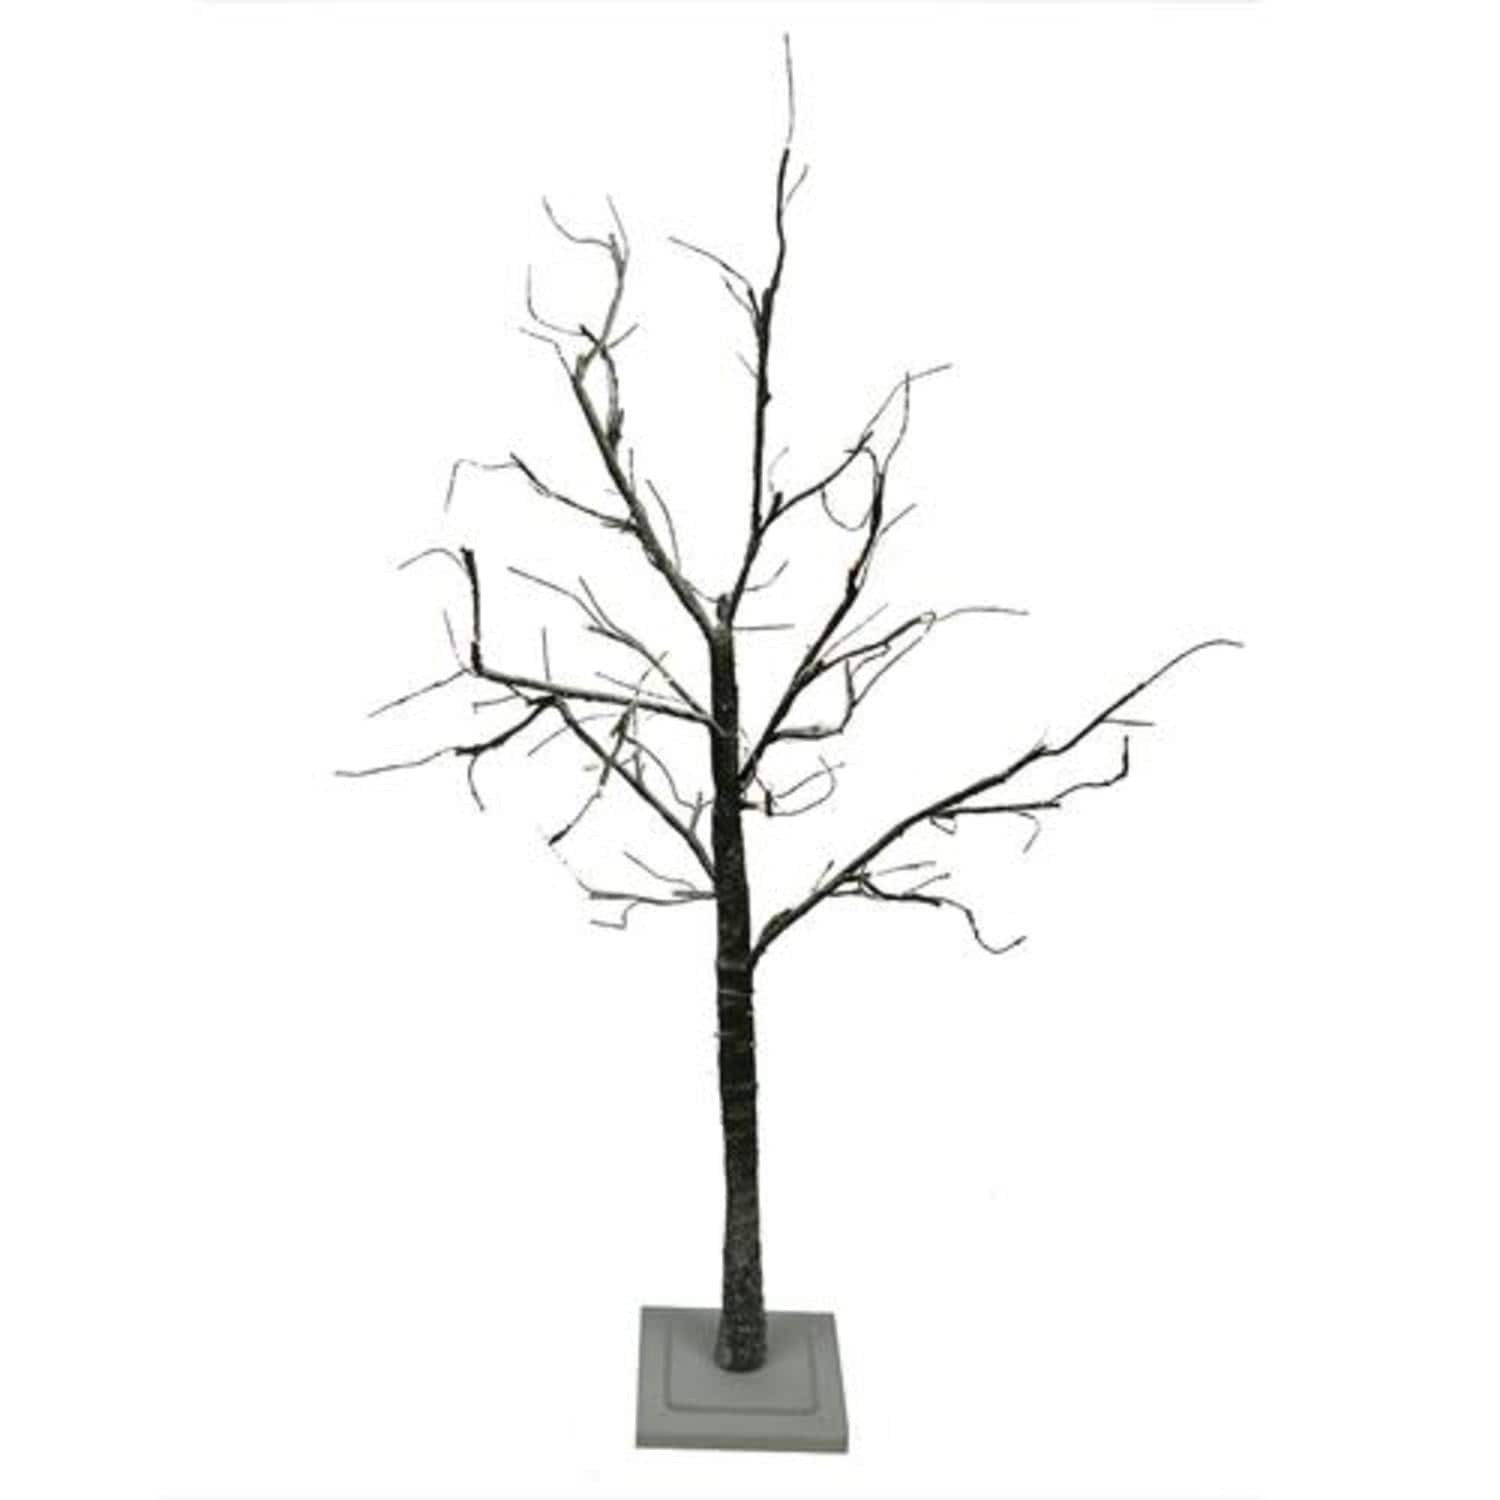 4' LED Lighted Flocked Christmas Twig Tree Outdoor Yard Art Decoration -  Warm Clear - Free Shipping Today - Overstock.com - 23539336